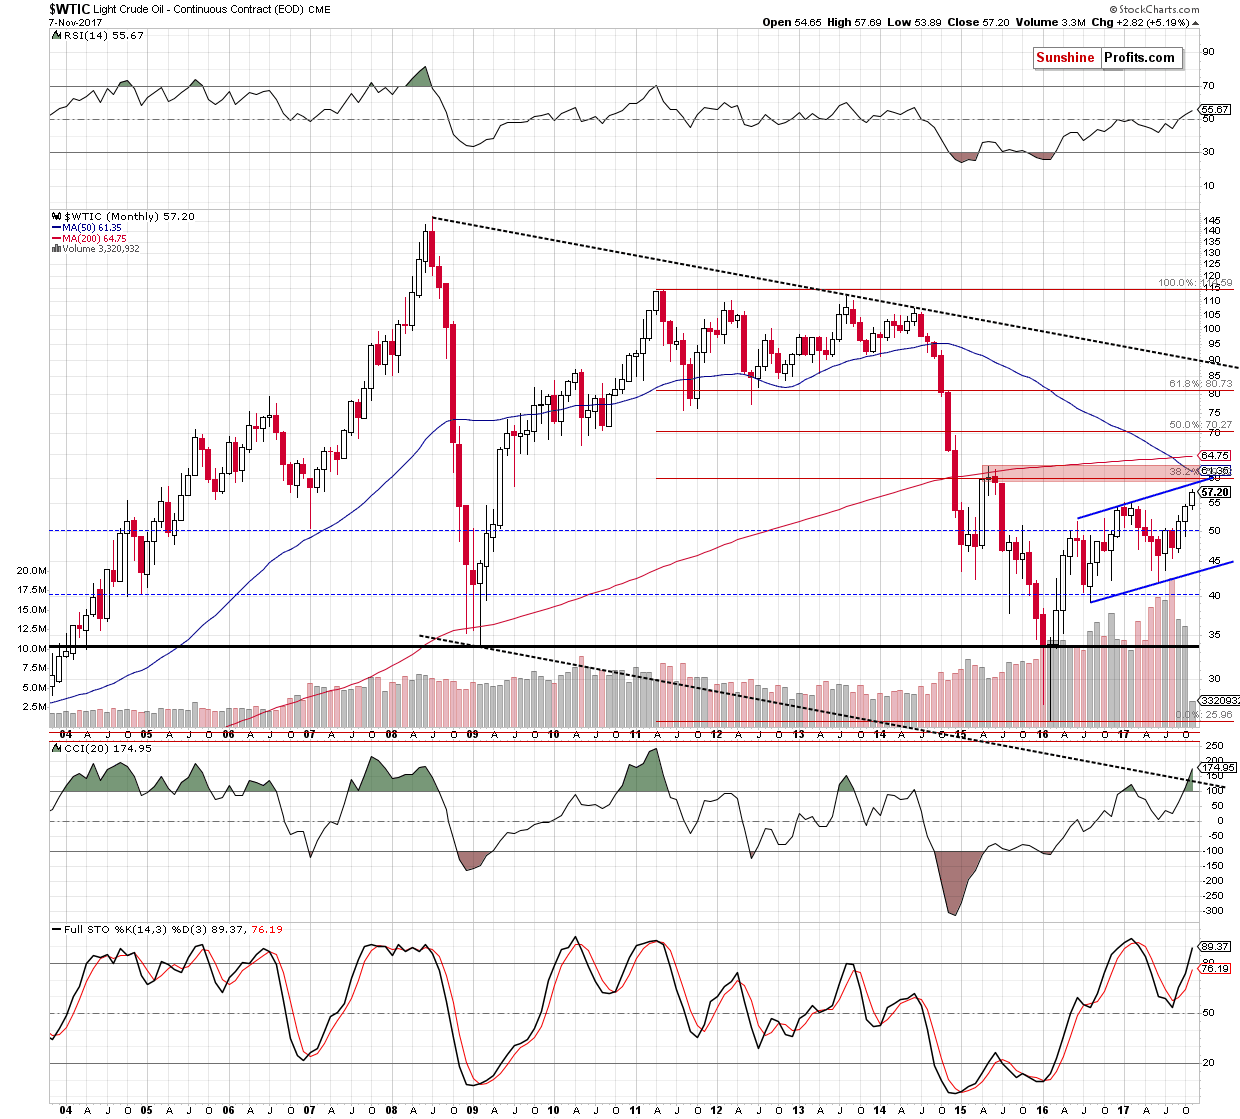 WTIC crude oil monthly chart